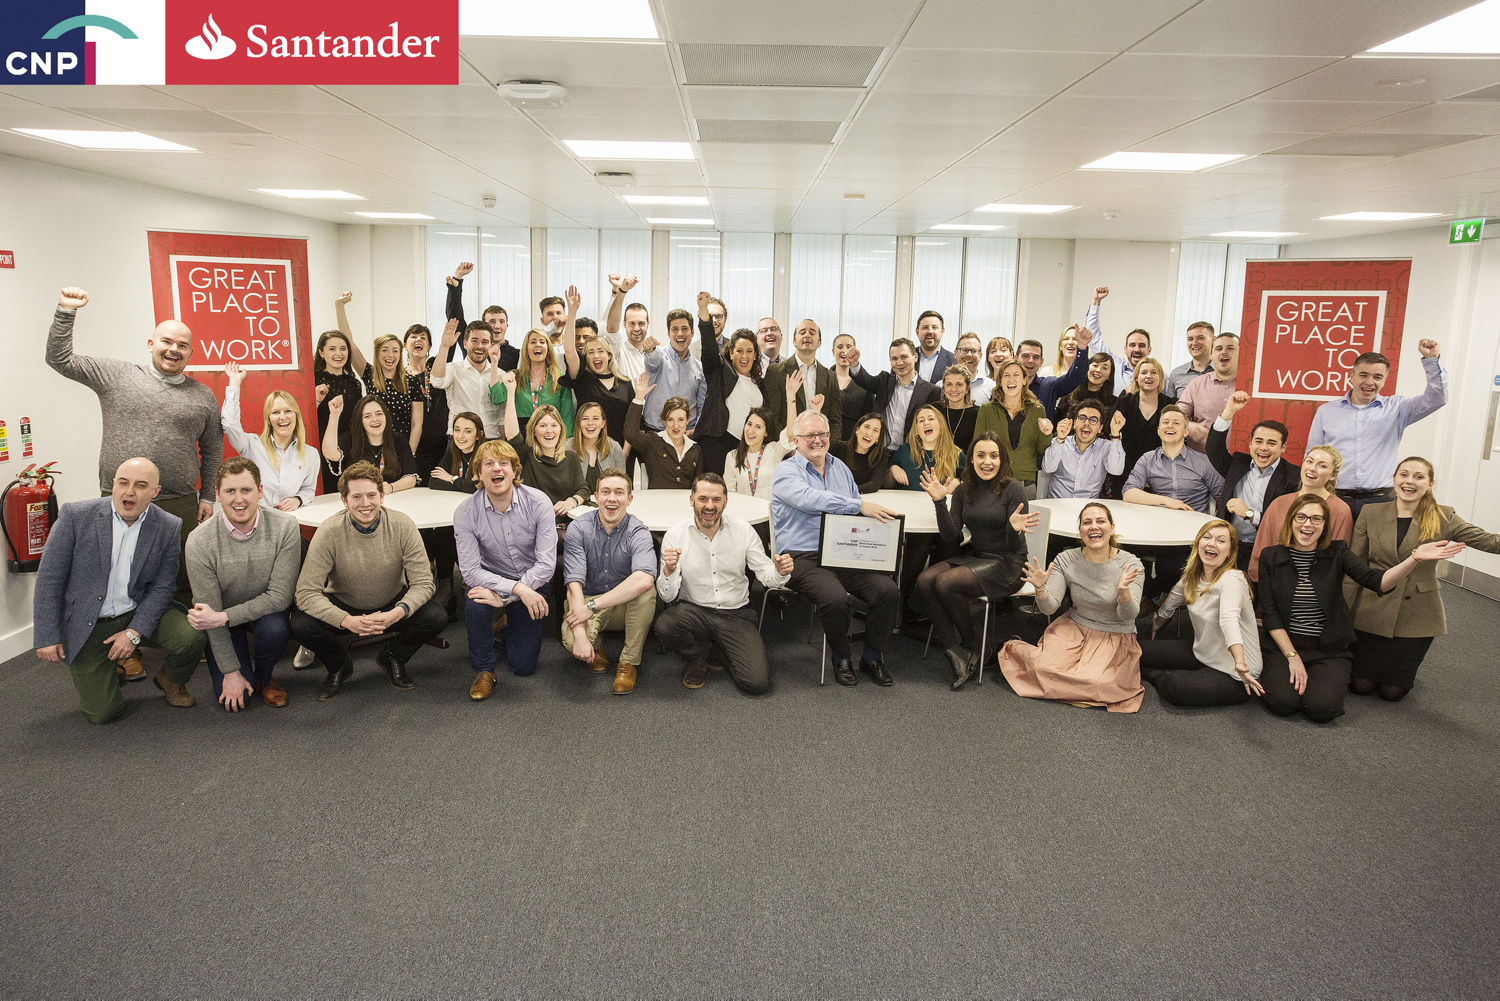 Corporate Group Shots: Ireland's Best Workplaces 2018 www.1image.ie